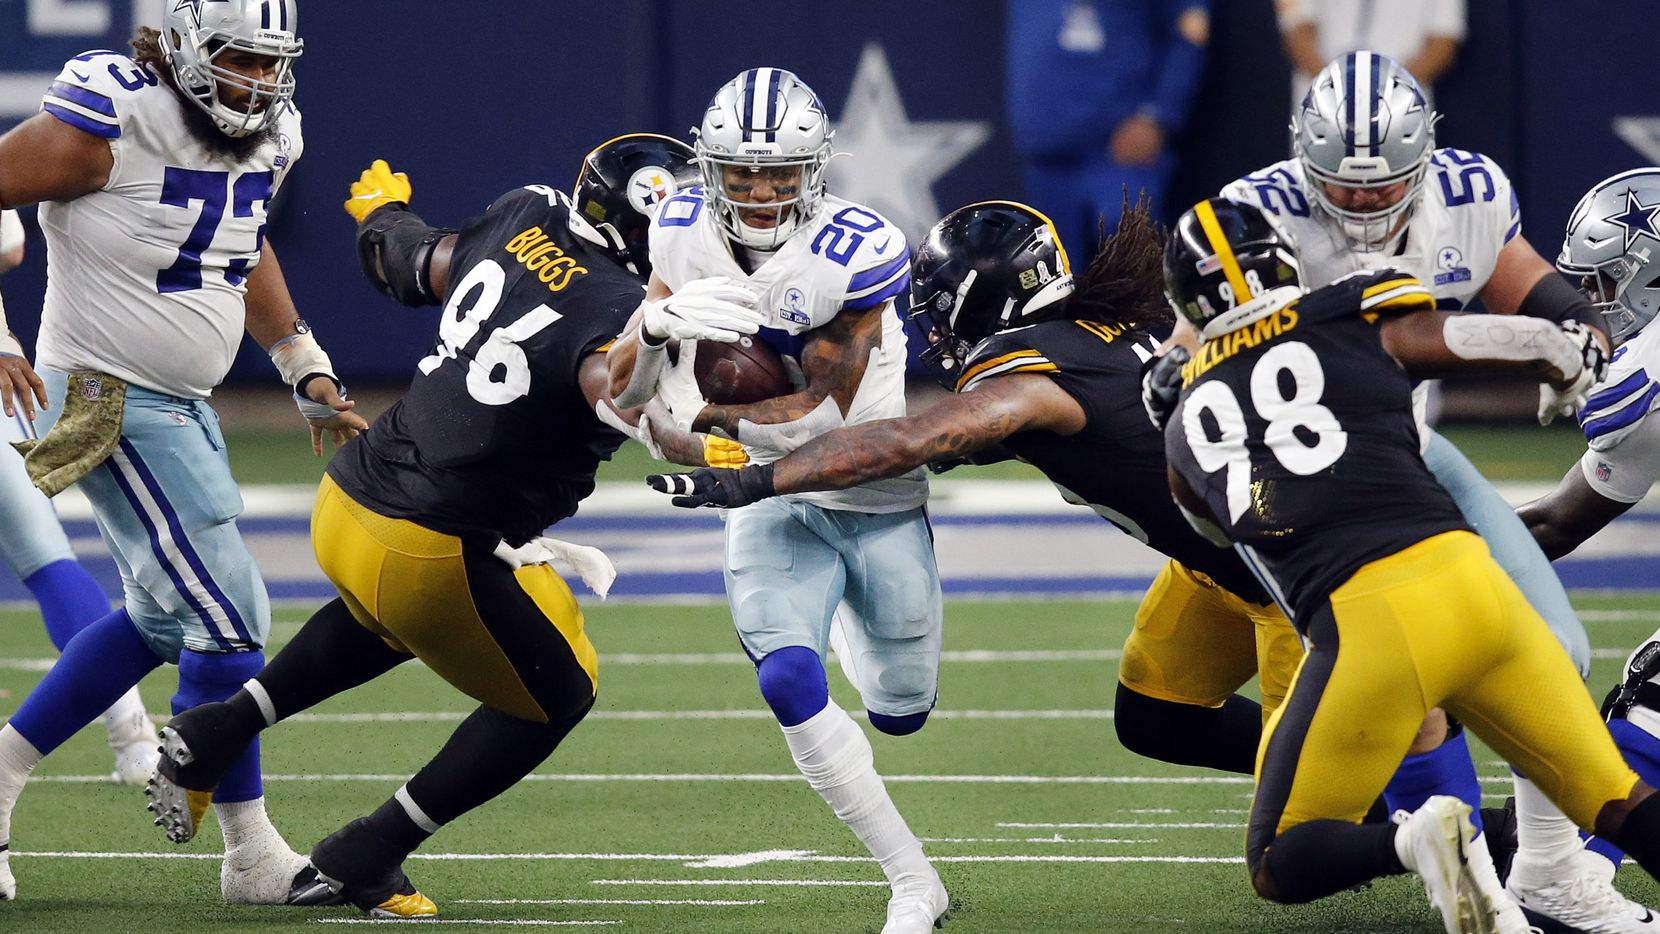 Cowboys running back Tony Pollard (20) runs through a hole in the Steelers' defense during the third quarter at AT&T Stadium in Arlington on Sunday, Nov. 8, 2020.